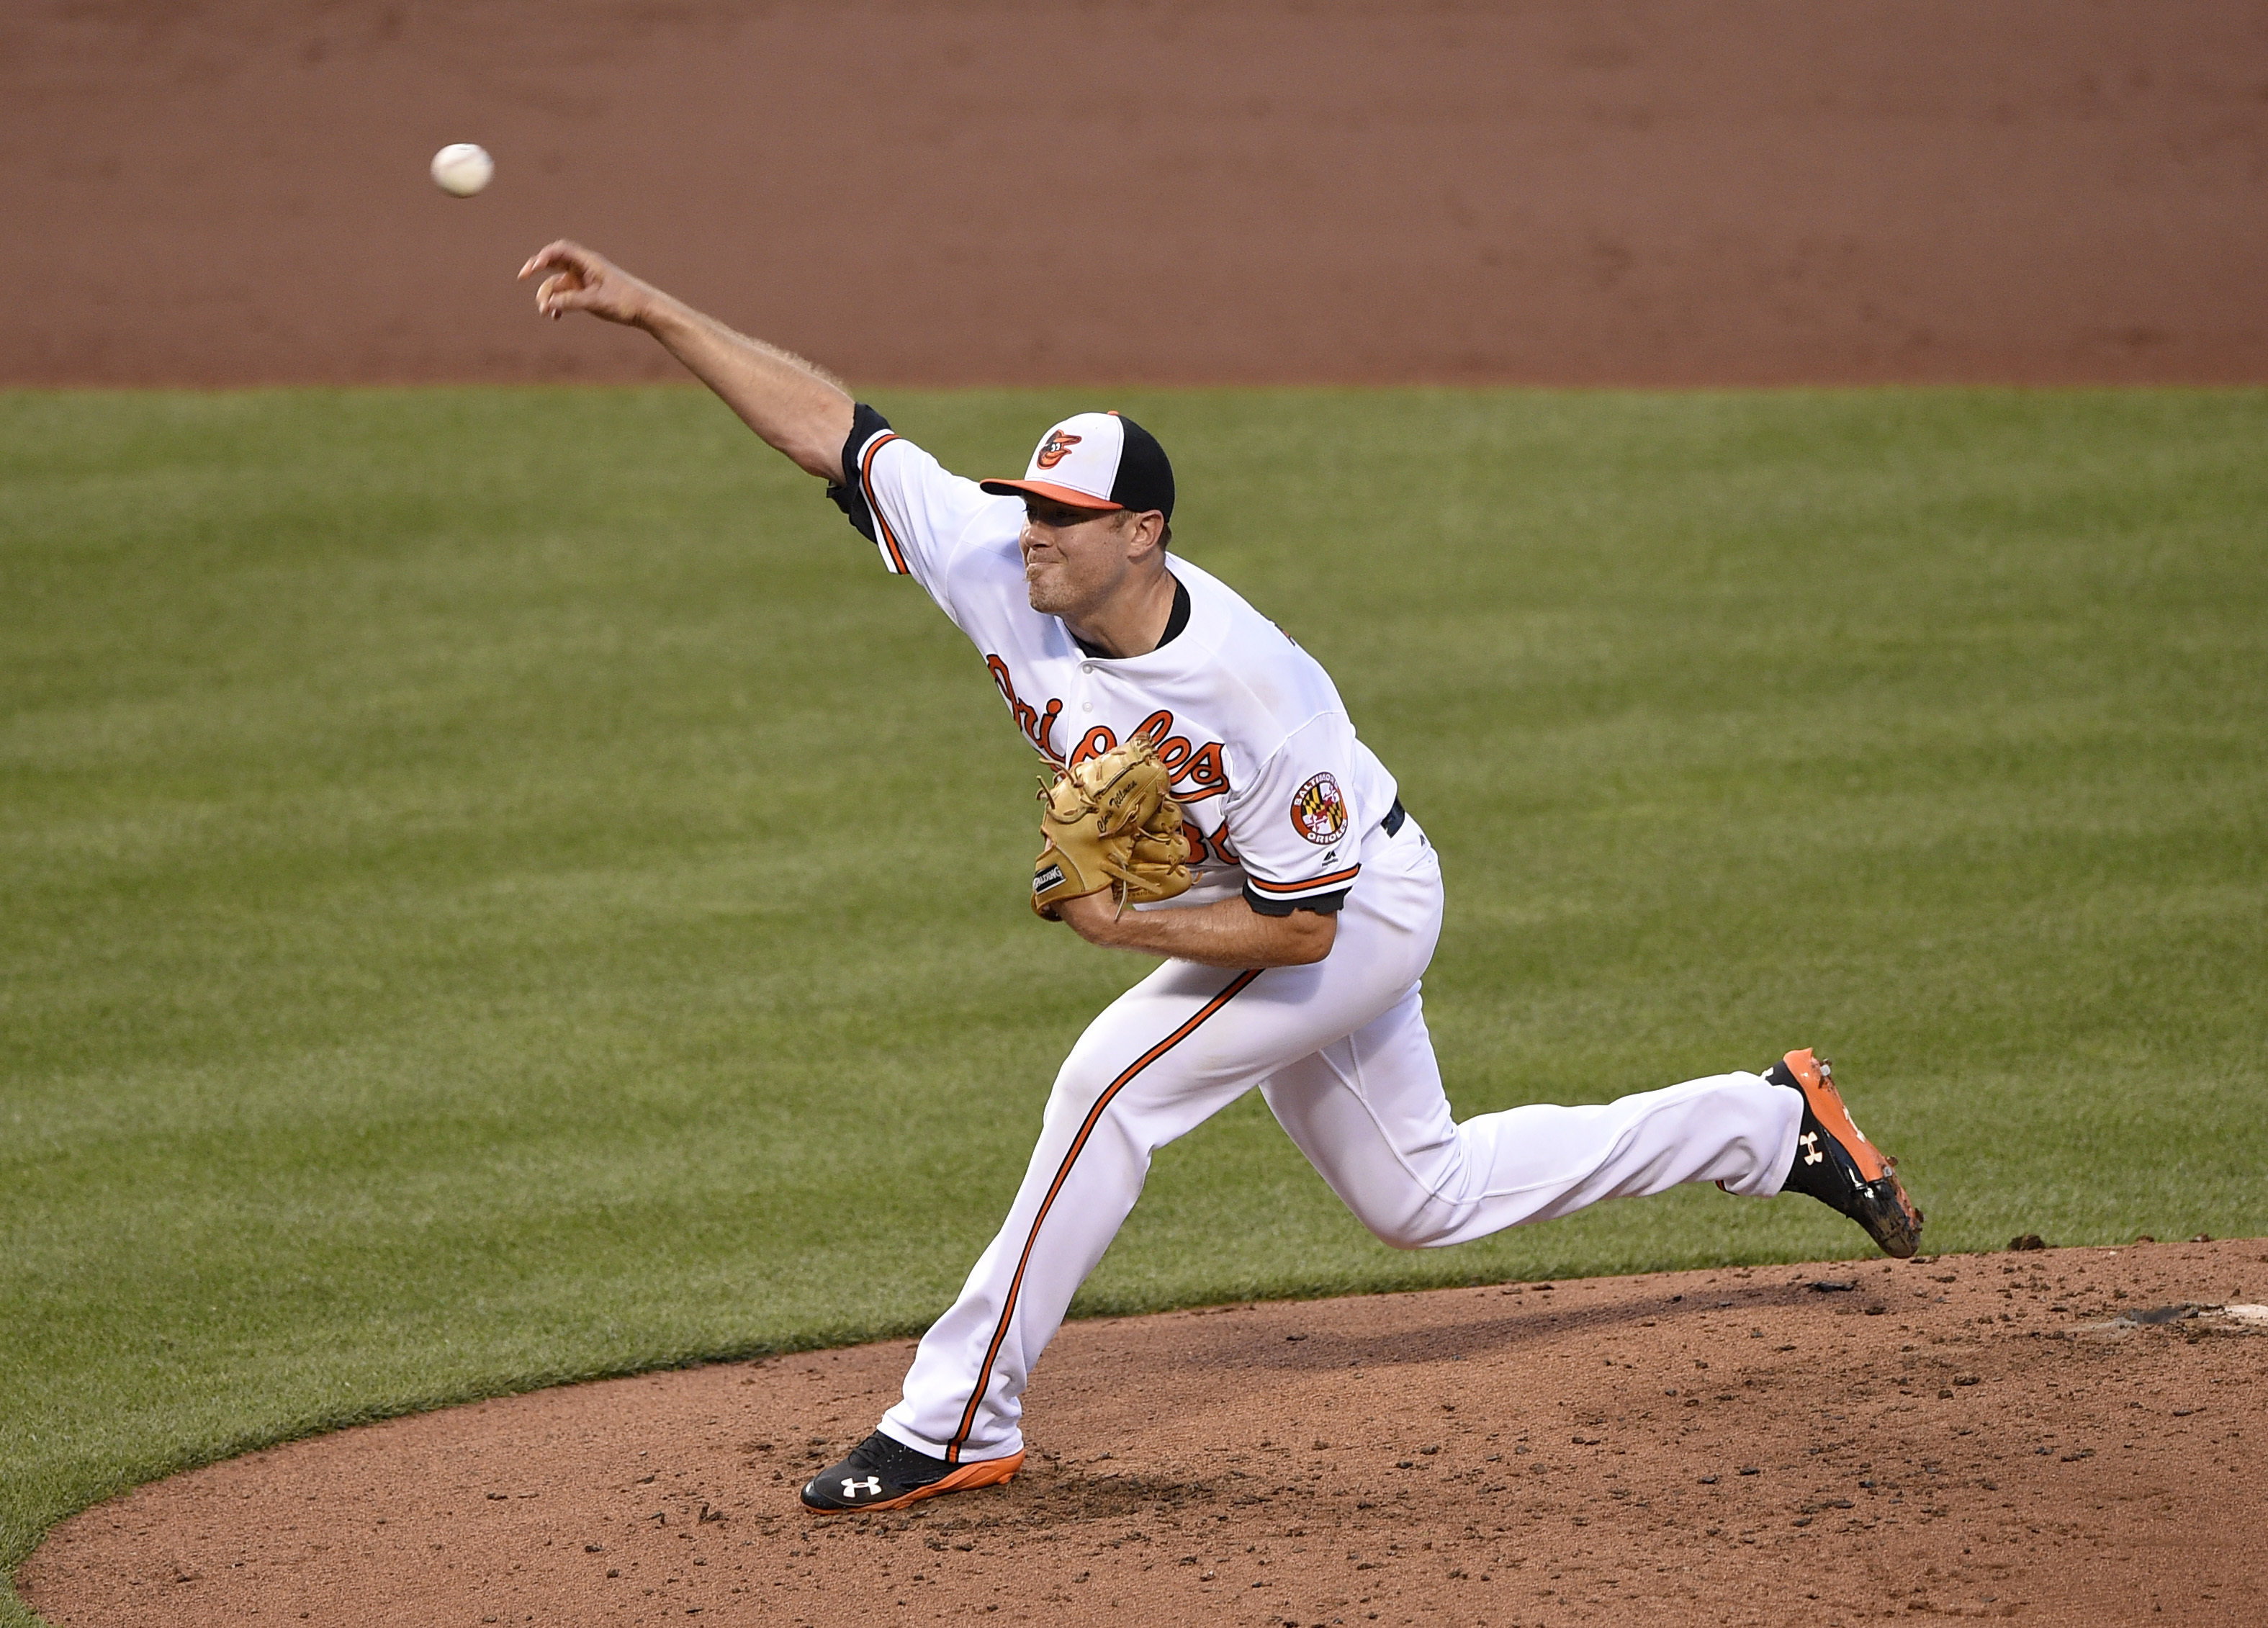 Baltimore Orioles starting pitcher Chris Tillman delivers a pitch during the third inning of a baseball game against the Colorado Rockies, Tuesday, July 26, 2016, in Baltimore. (AP Photo/Nick Wass)